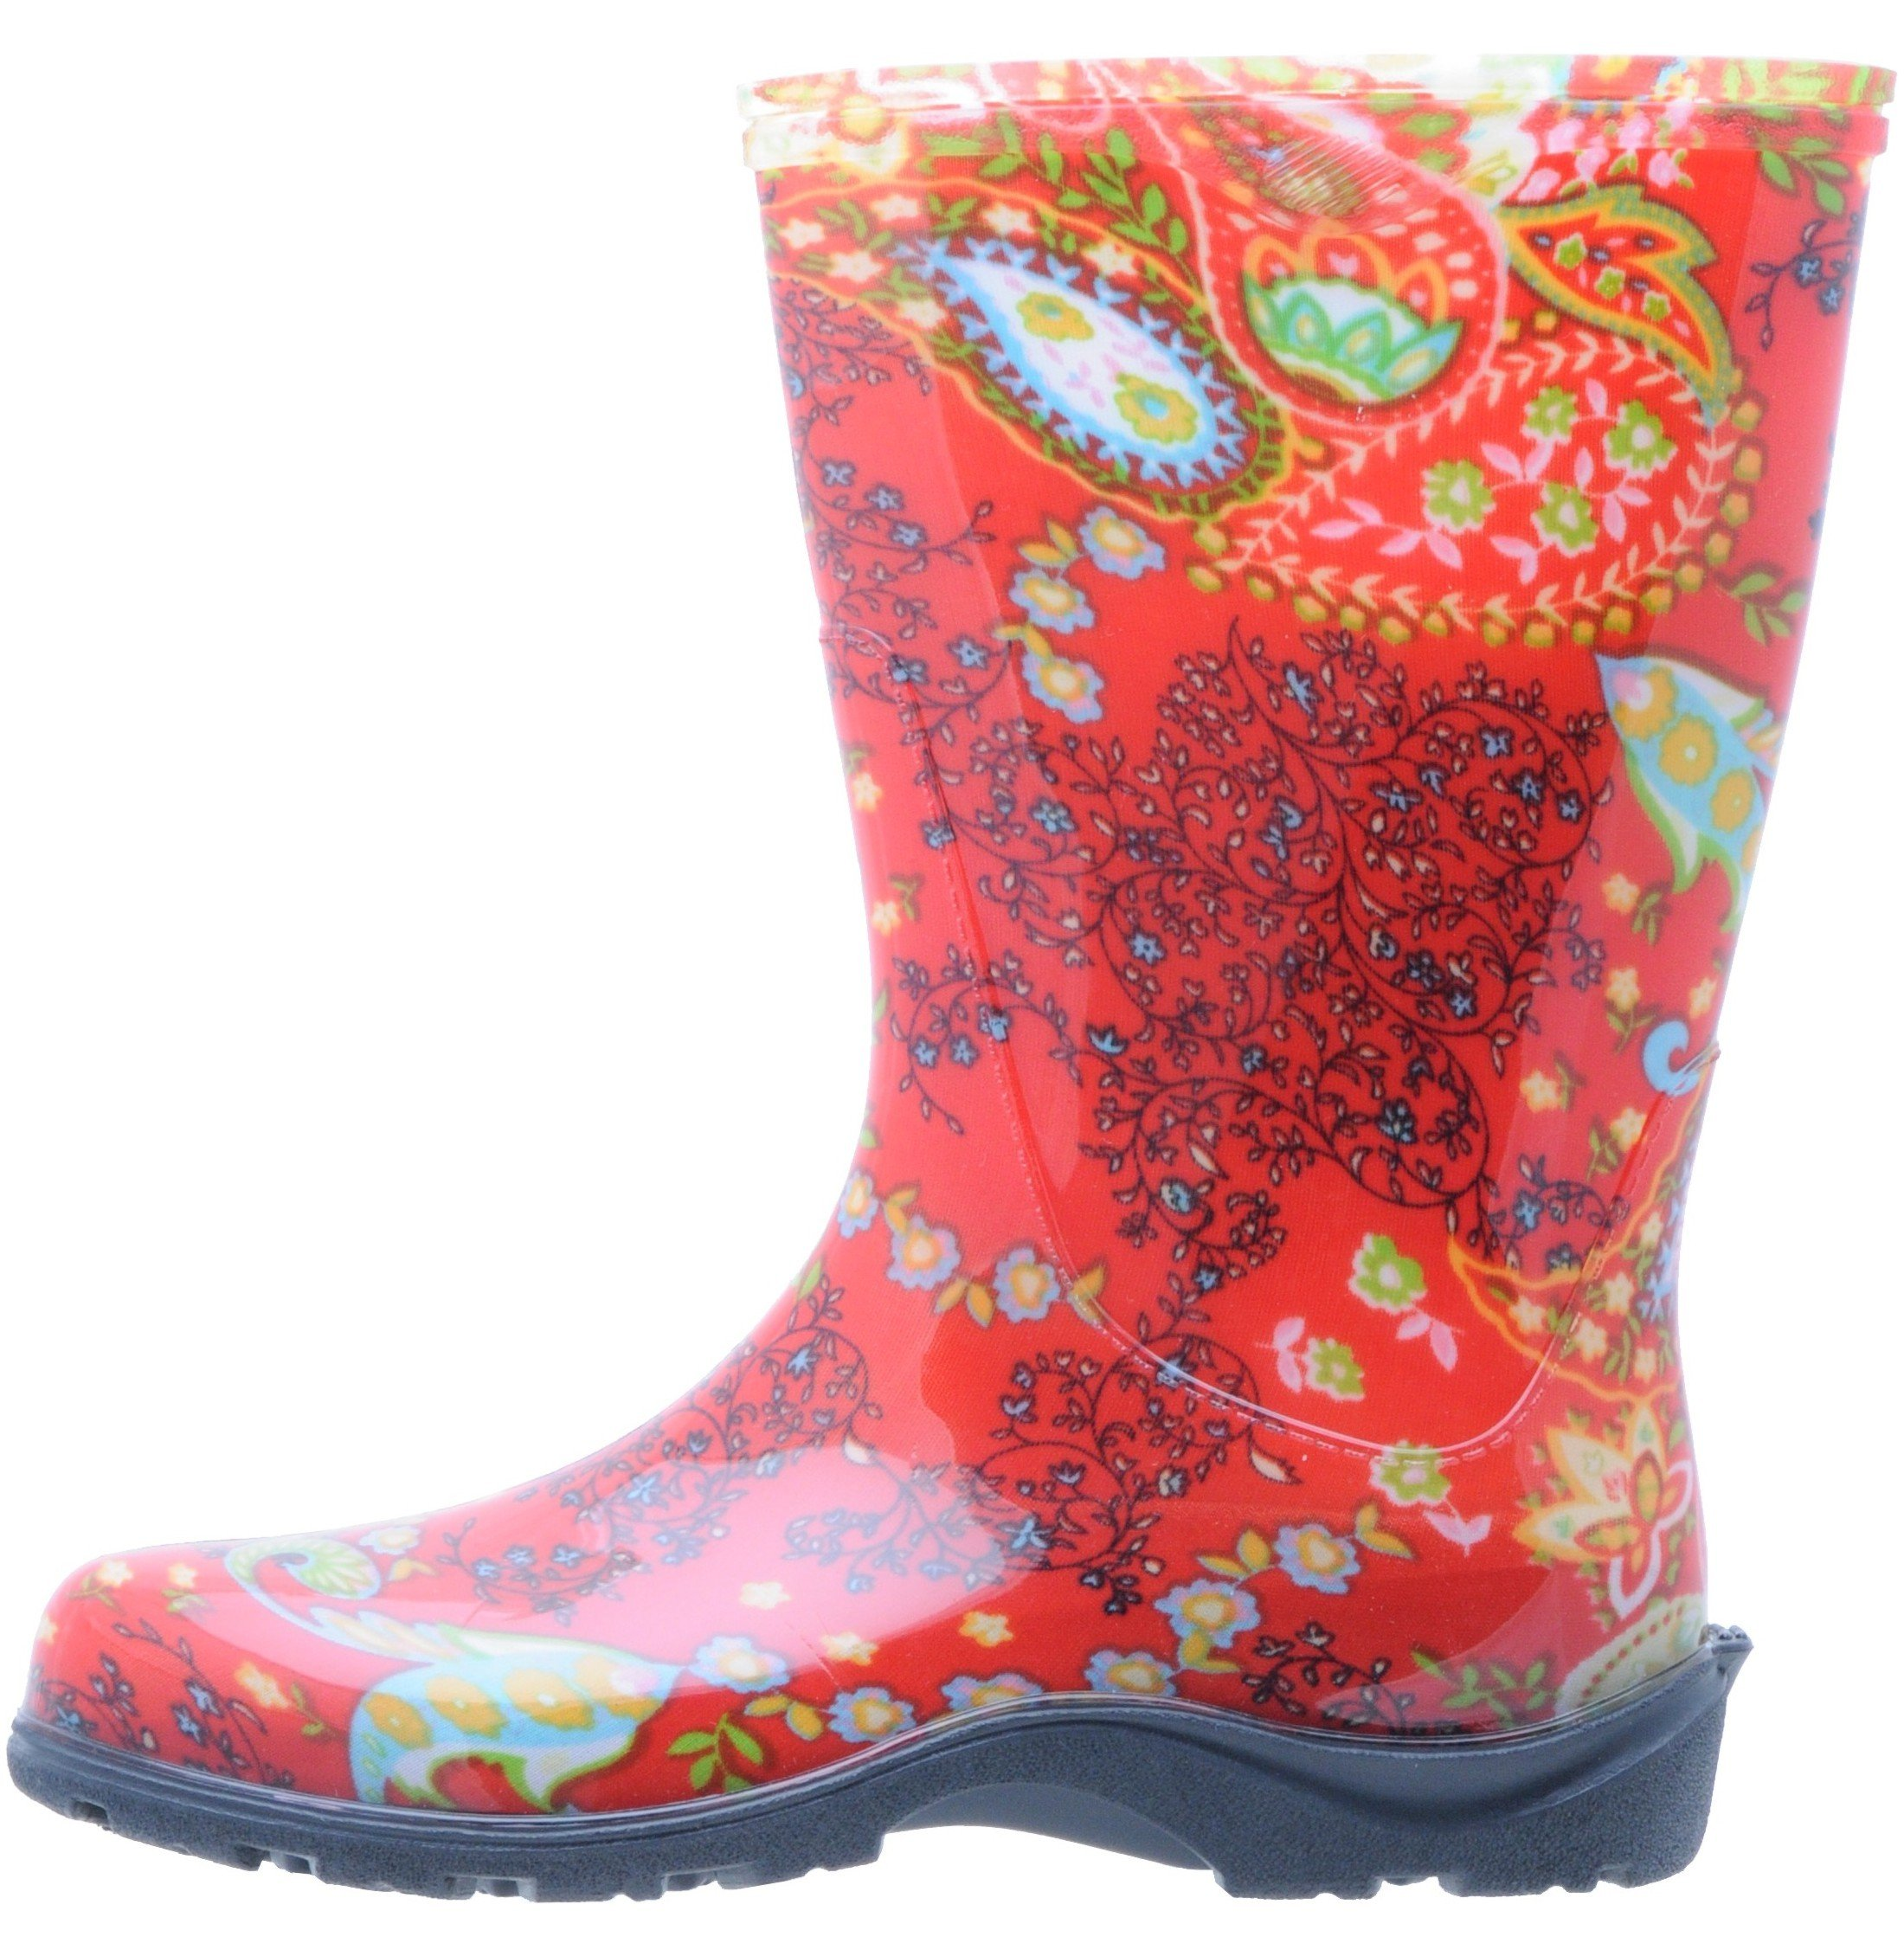 Sloggers  Women's Waterproof Rain and Garden Boot with Comfort Insole, Paisley Red, Size 9, Style 5004RD09 by Sloggers (Image #6)